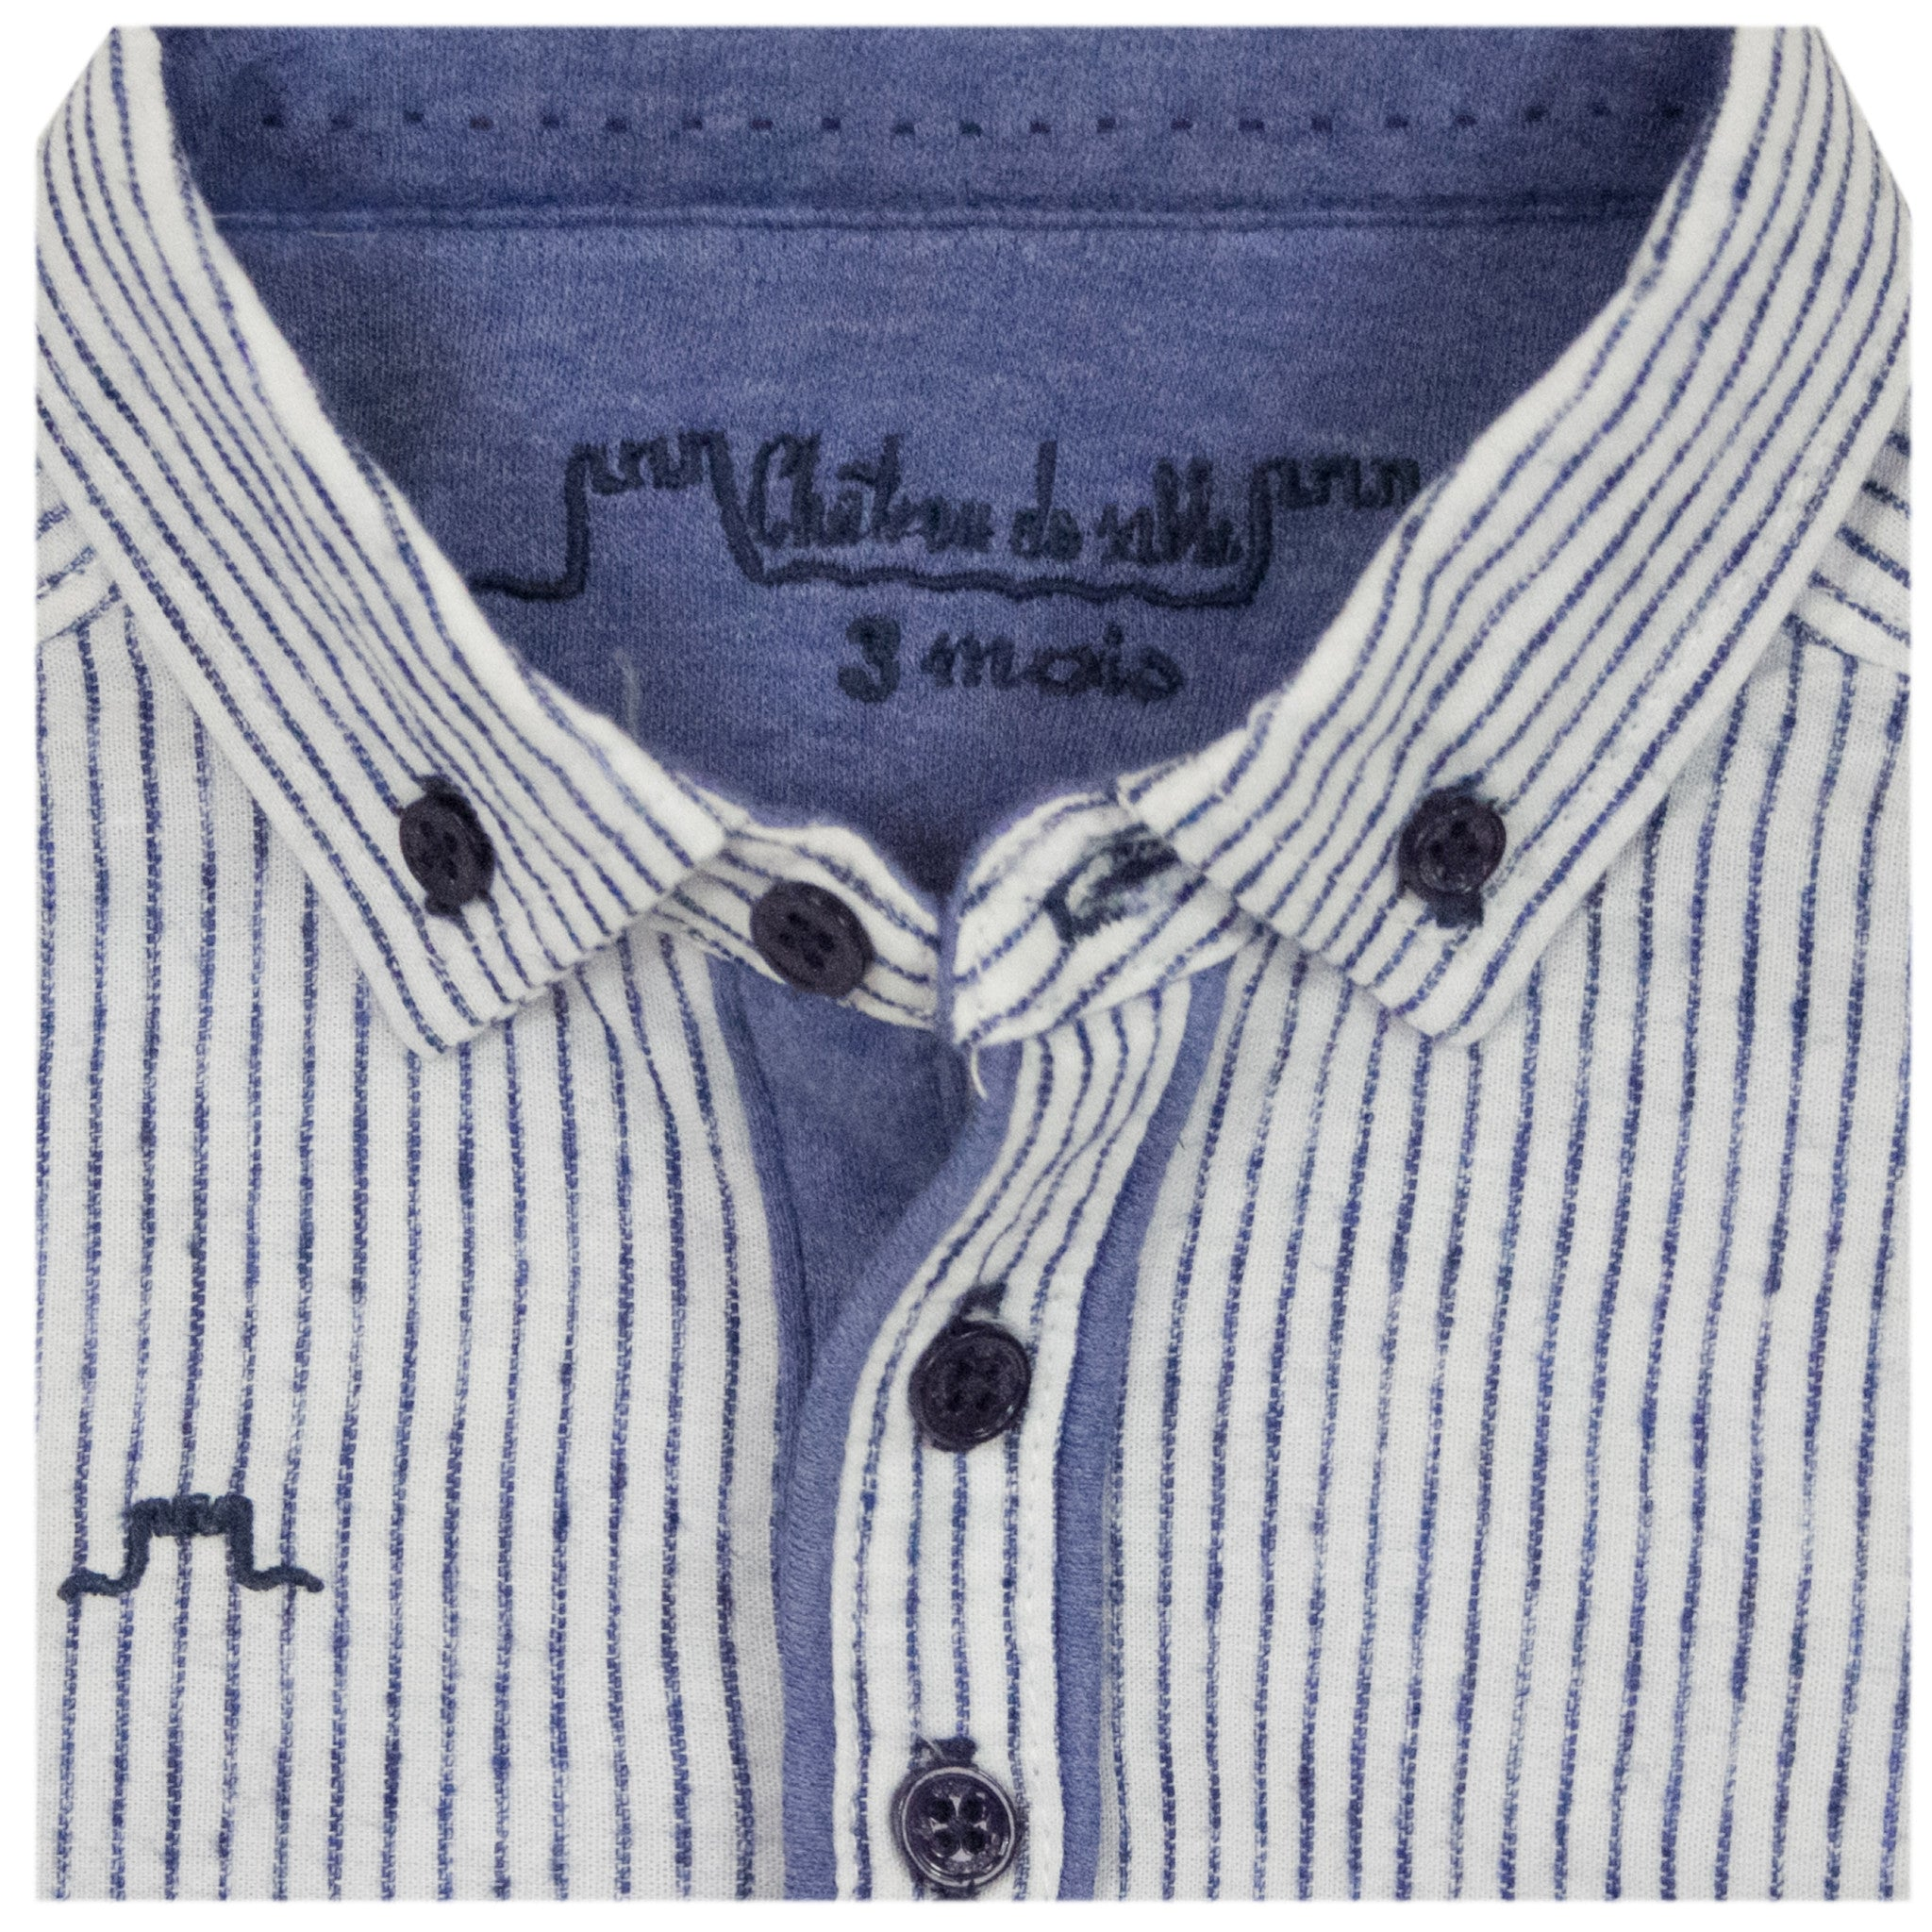 Boys Navy Striped Shirt